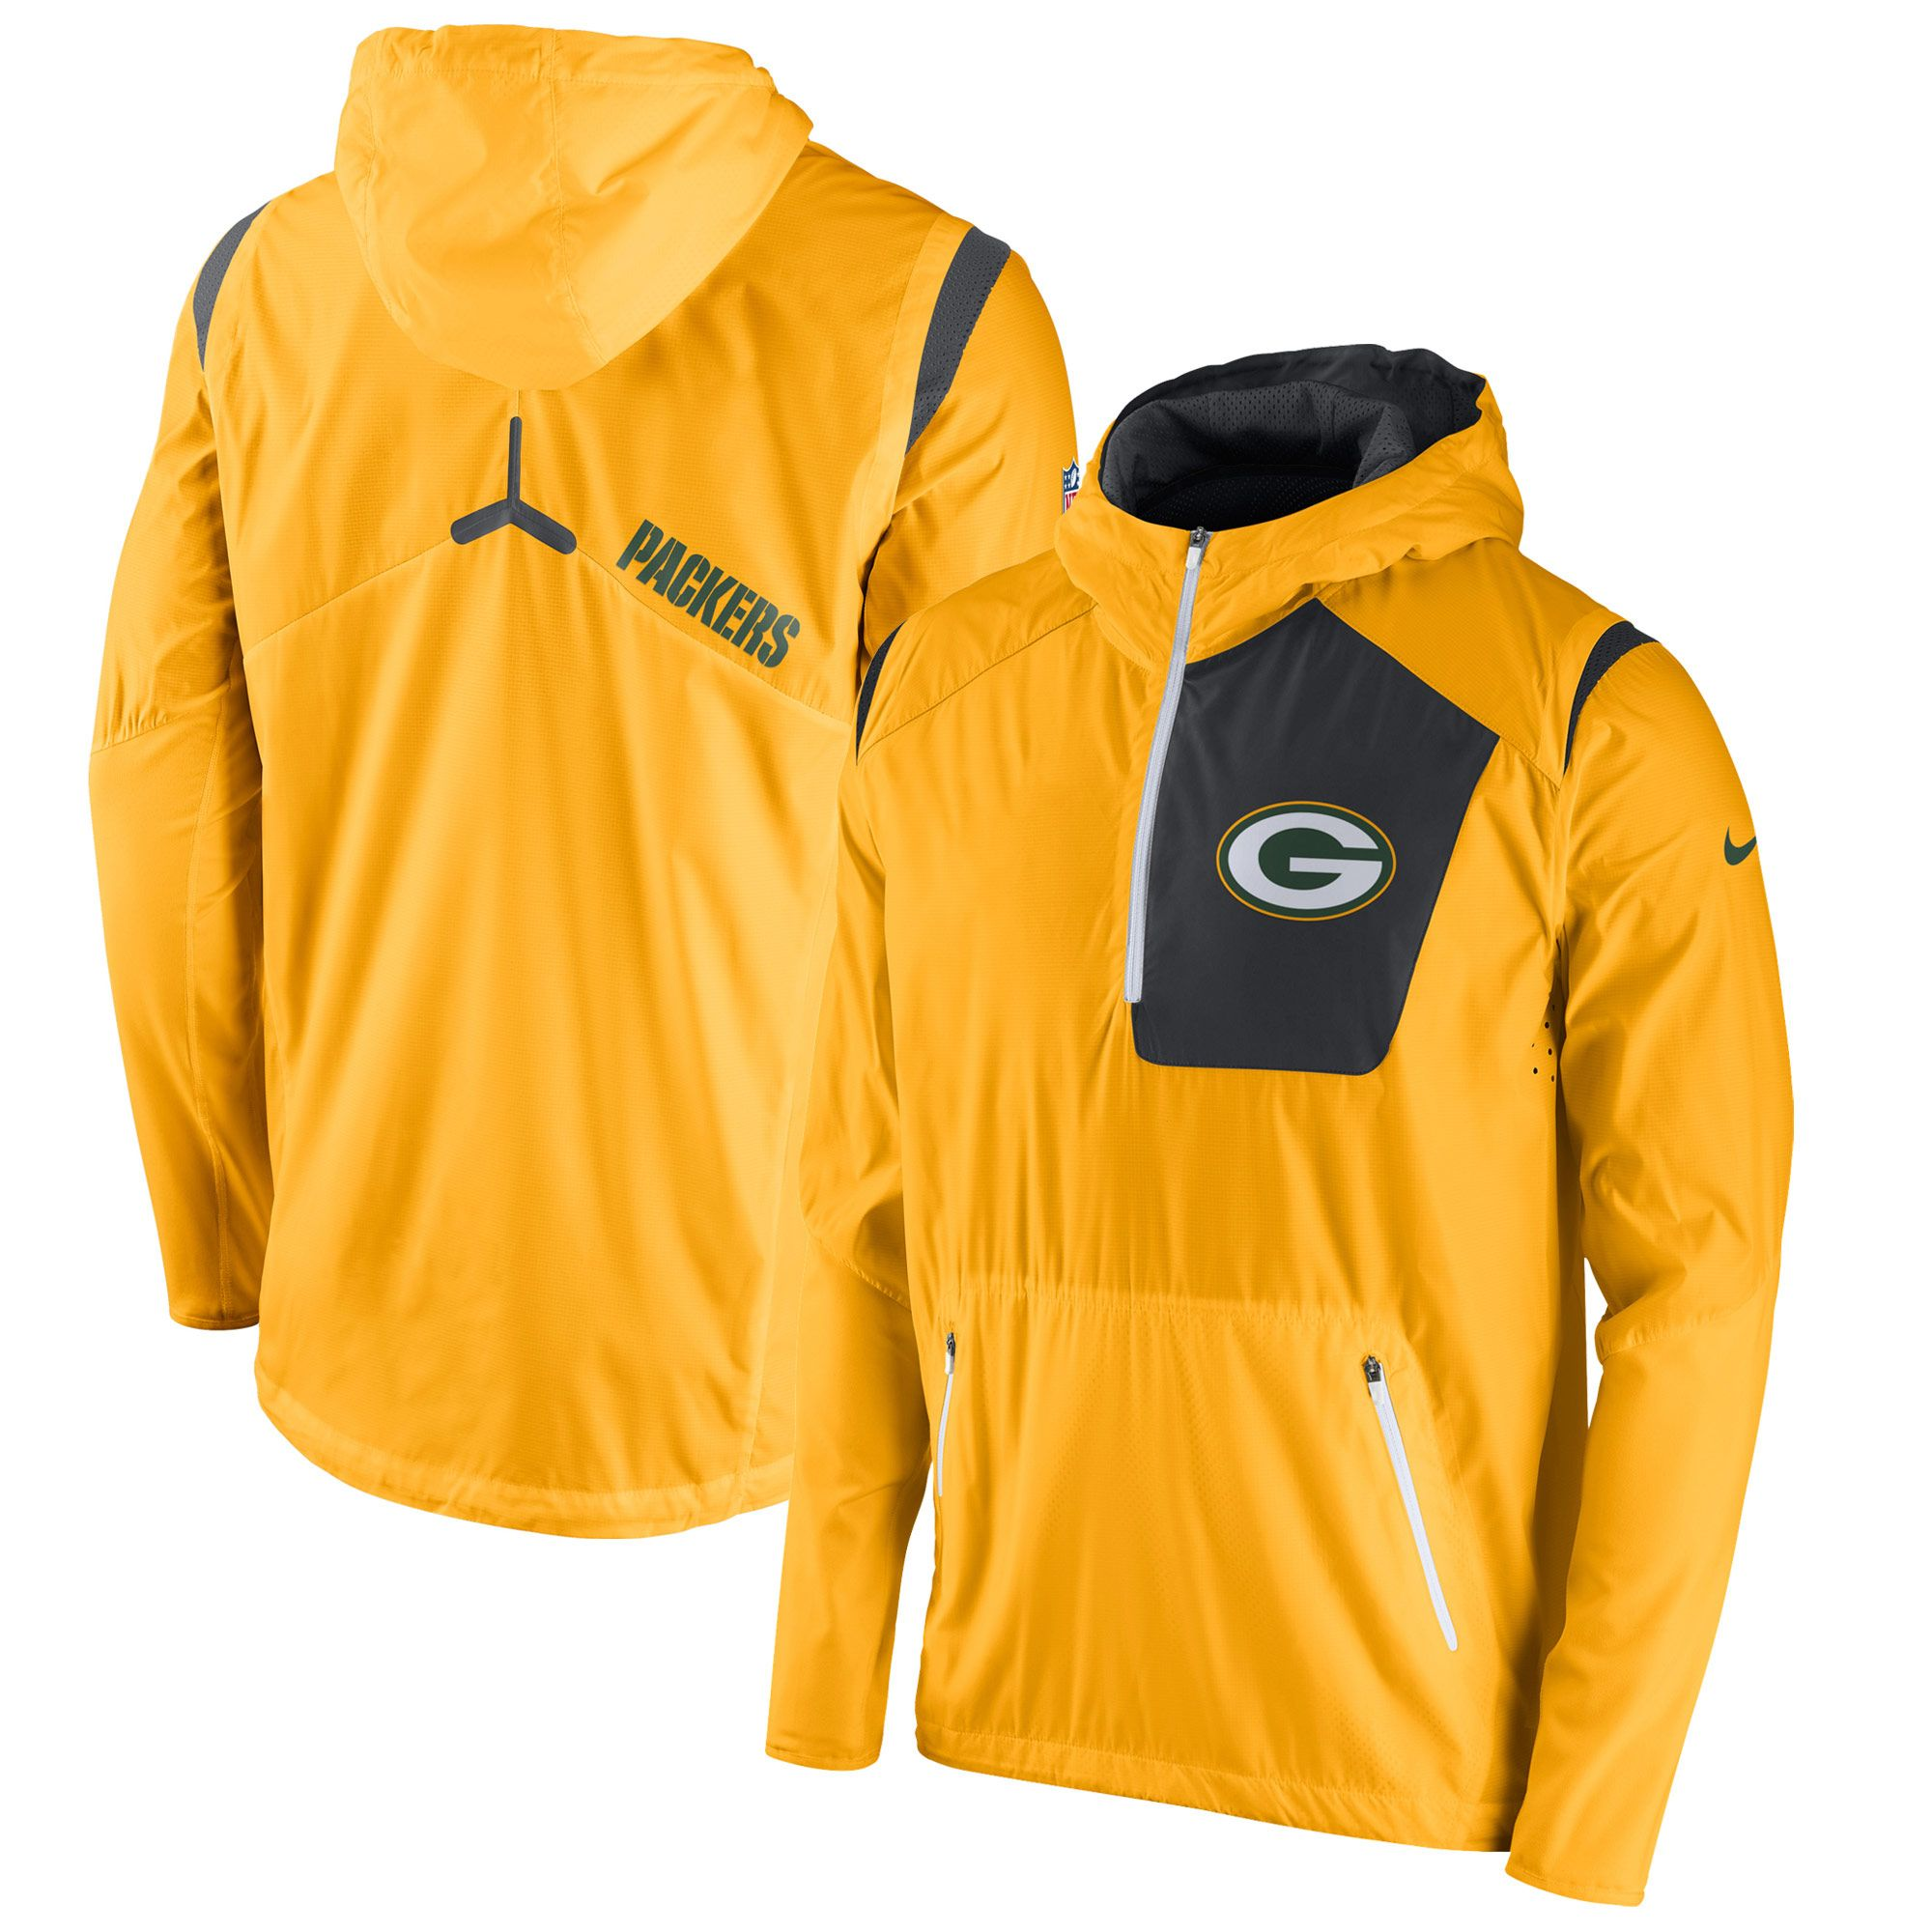 nfl packers gear - amstarwny.com 1ad00af86